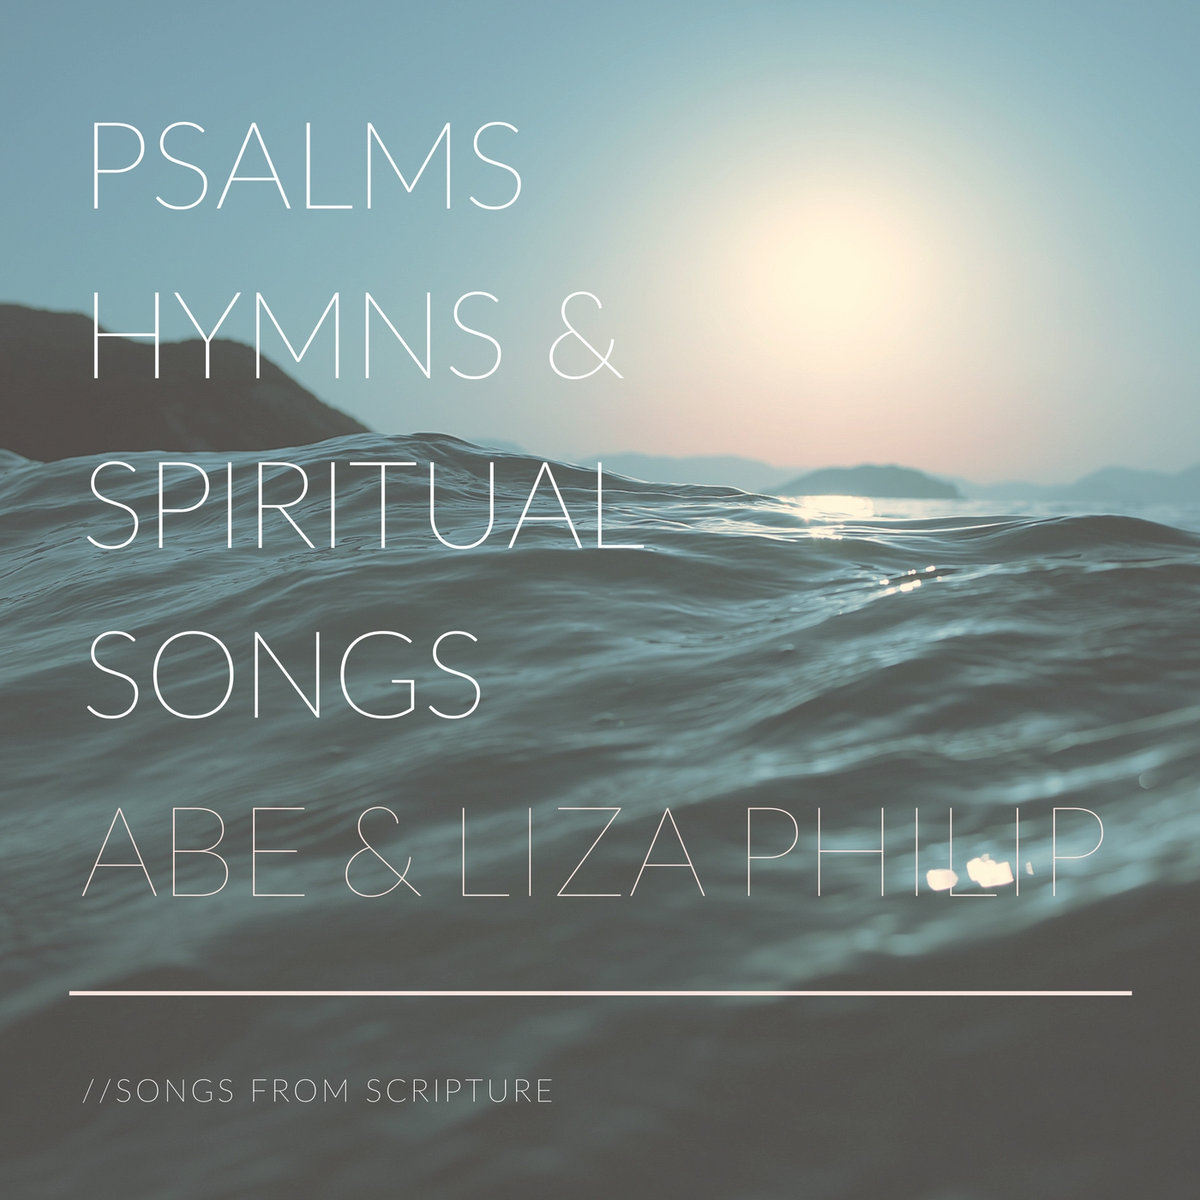 Psalms, Hymns and Spiritual Songs   This collection includes some of our favorite Psalms, hymns and spiritual songs. Every line of these songs is drawn from Scripture. We hope these songs bring you joy as you dive into the Word and see Jesus there.  WE ARE CURRENTLY MAKING THIS ALBUM FREE TO ALL WHO    JOIN OUR MAILING LIST!